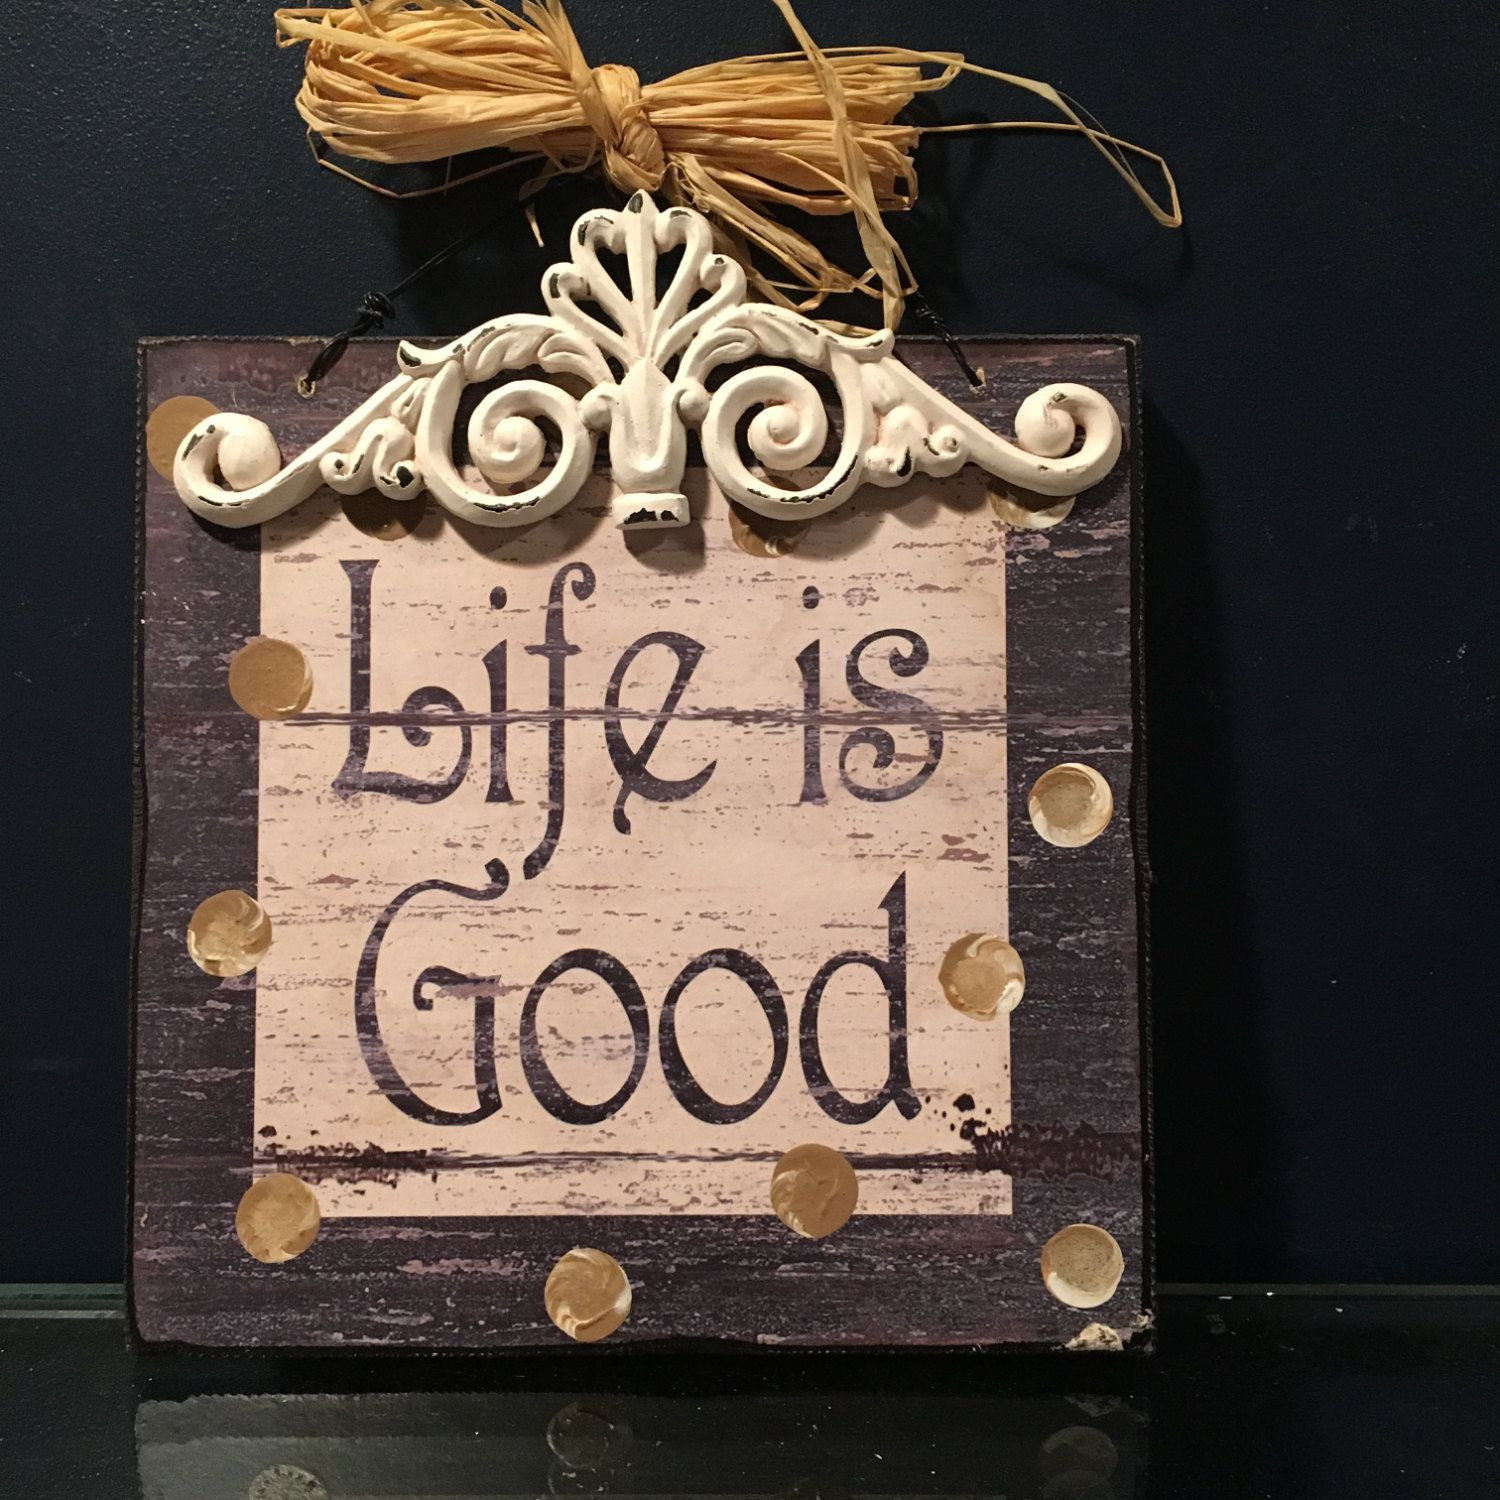 Rustic wood life is good sign rustic wall decor rustic home rustic wood life is good sign rustic wall decor rustic home decor housewarming gift inspirational gift life is good rustic plaque amipublicfo Gallery